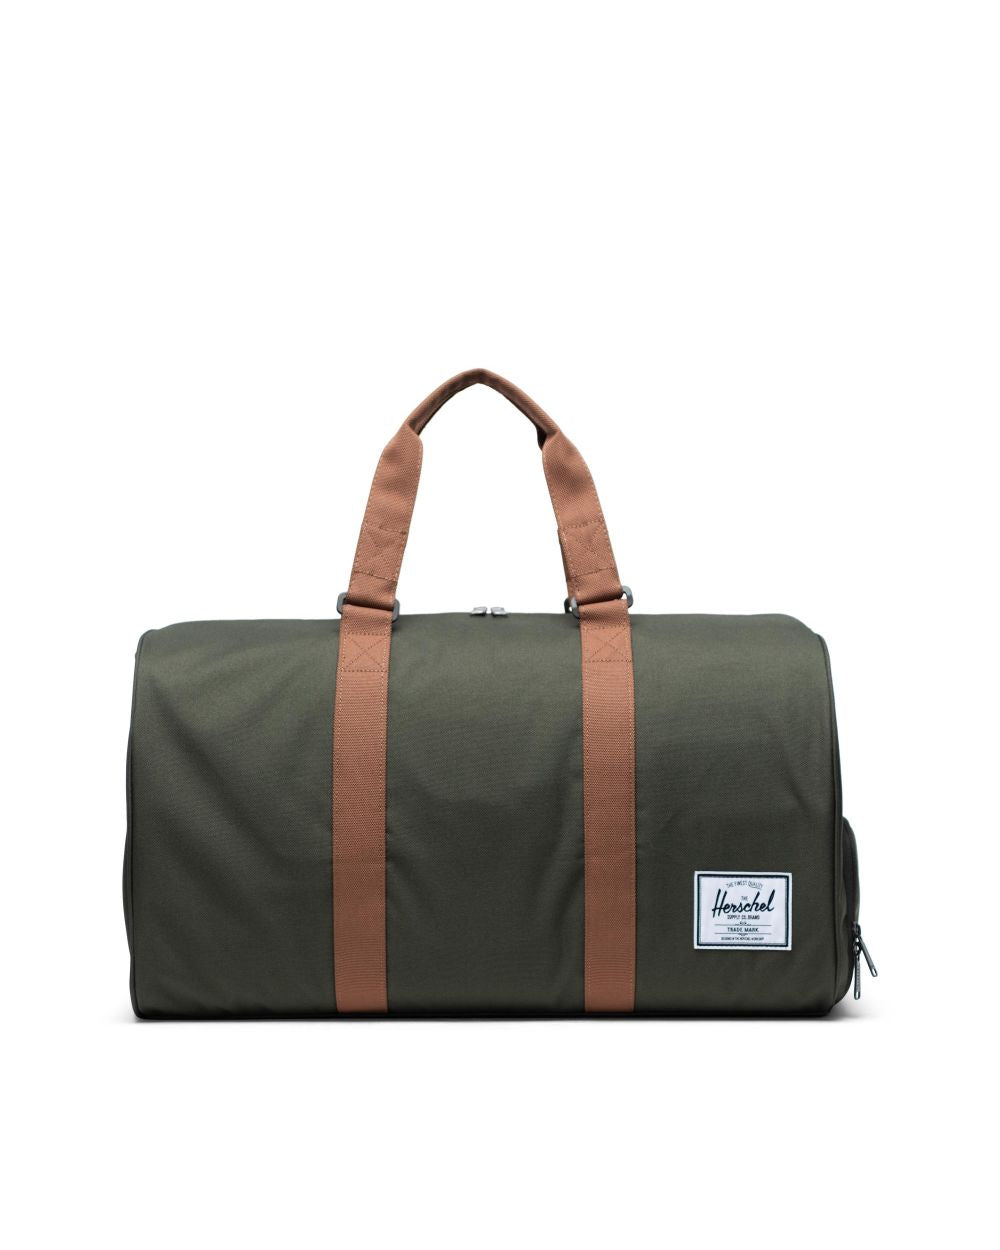 NOVEL DUFFLE - DARK OLIVE/SADDLE BROWN